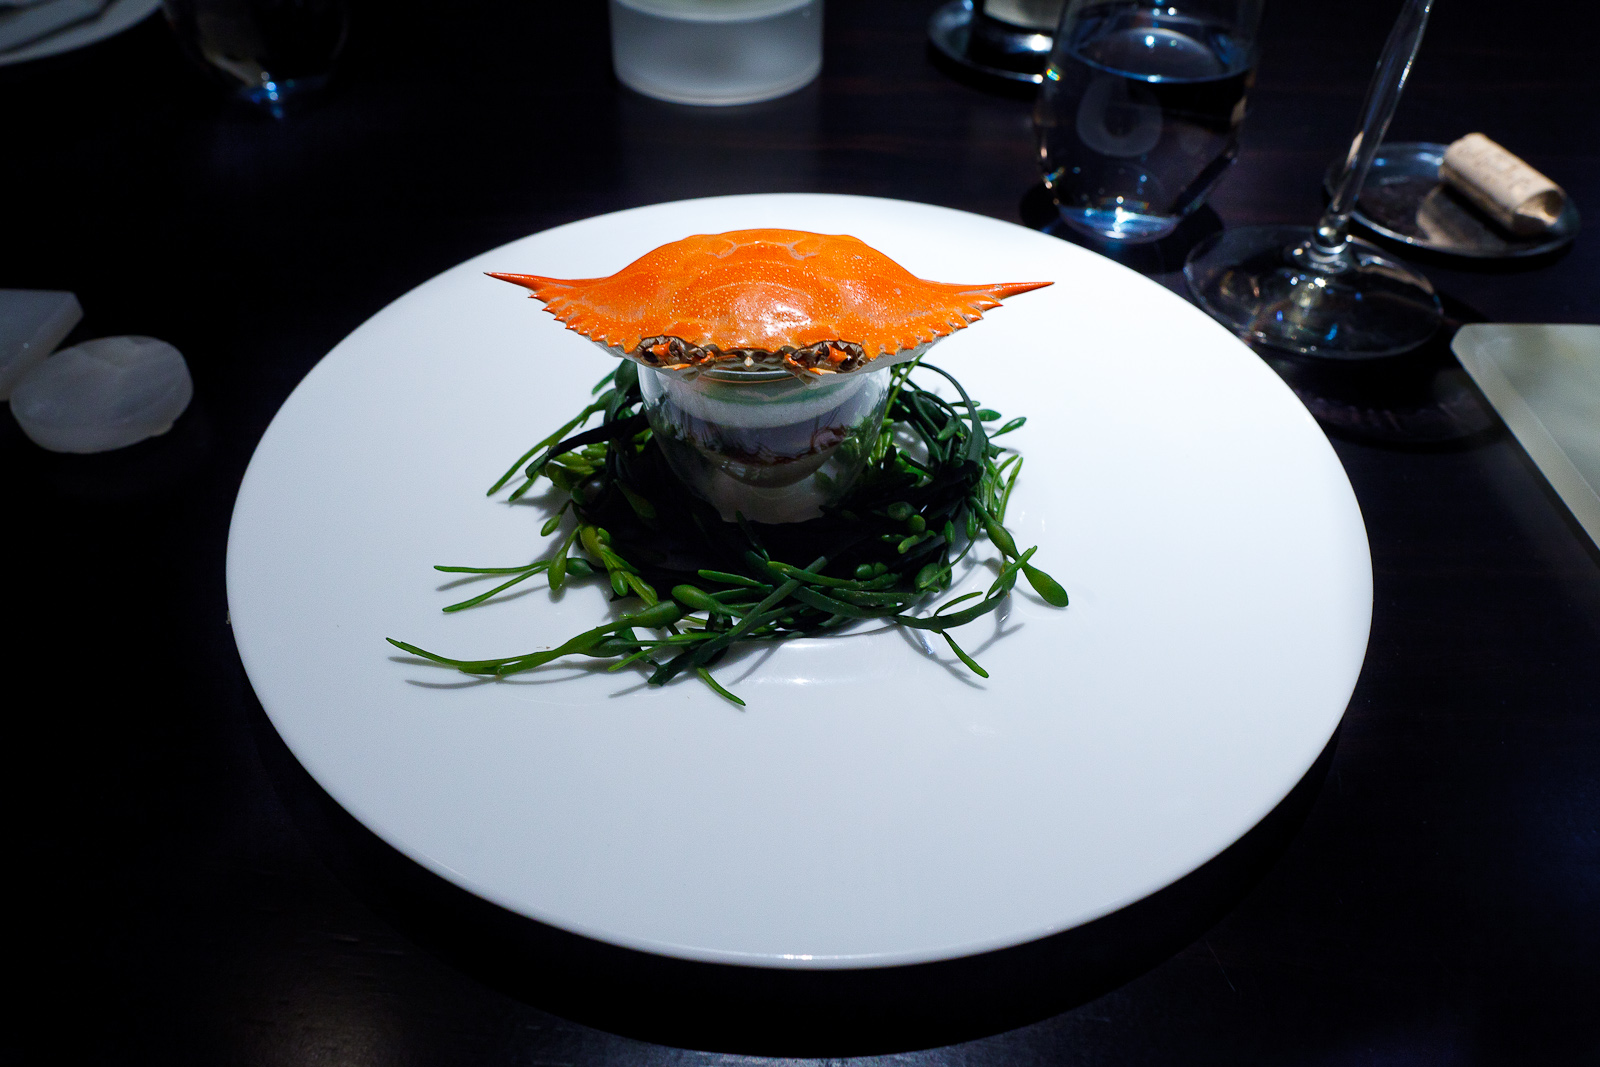 1st Course: Maryland blue crab en gelée, fennel cream, basil, presentation